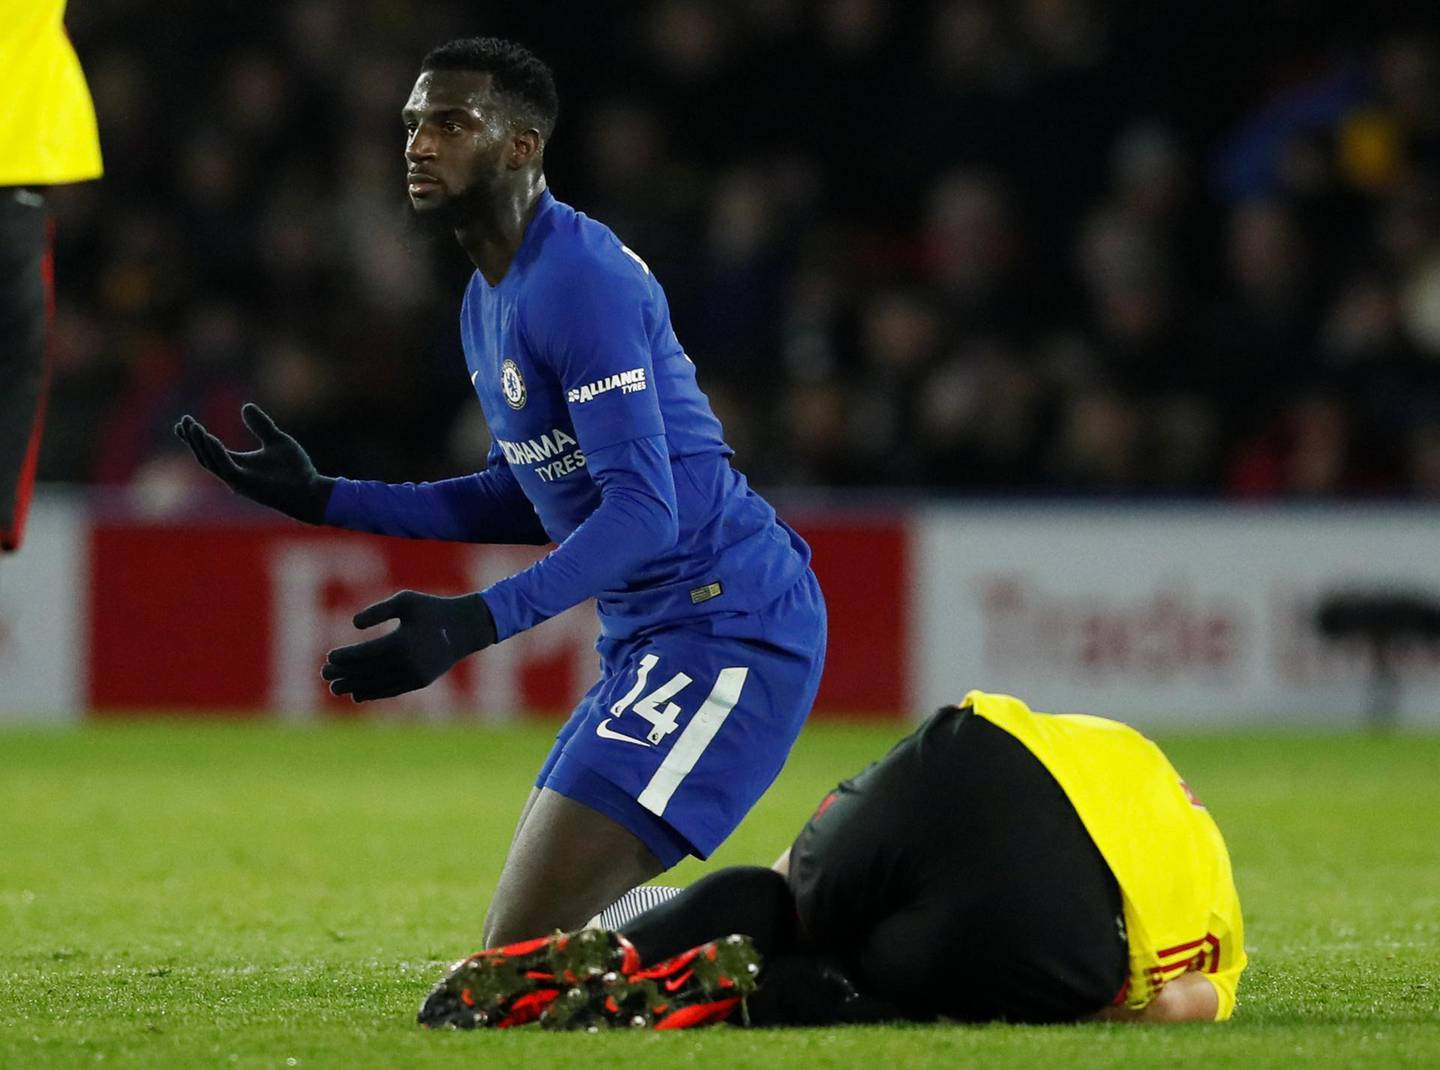 """Soccer Football - Premier League - Watford vs Chelsea - Vicarage Road, Watford, Britain - February 5, 2018   Chelsea's Tiemoue Bakayoko reacts before being sent off for a foul on Watford's Richarlison                REUTERS/David Klein    EDITORIAL USE ONLY. No use with unauthorized audio, video, data, fixture lists, club/league logos or """"live"""" services. Online in-match use limited to 75 images, no video emulation. No use in betting, games or single club/league/player publications.  Please contact your account representative for further details."""